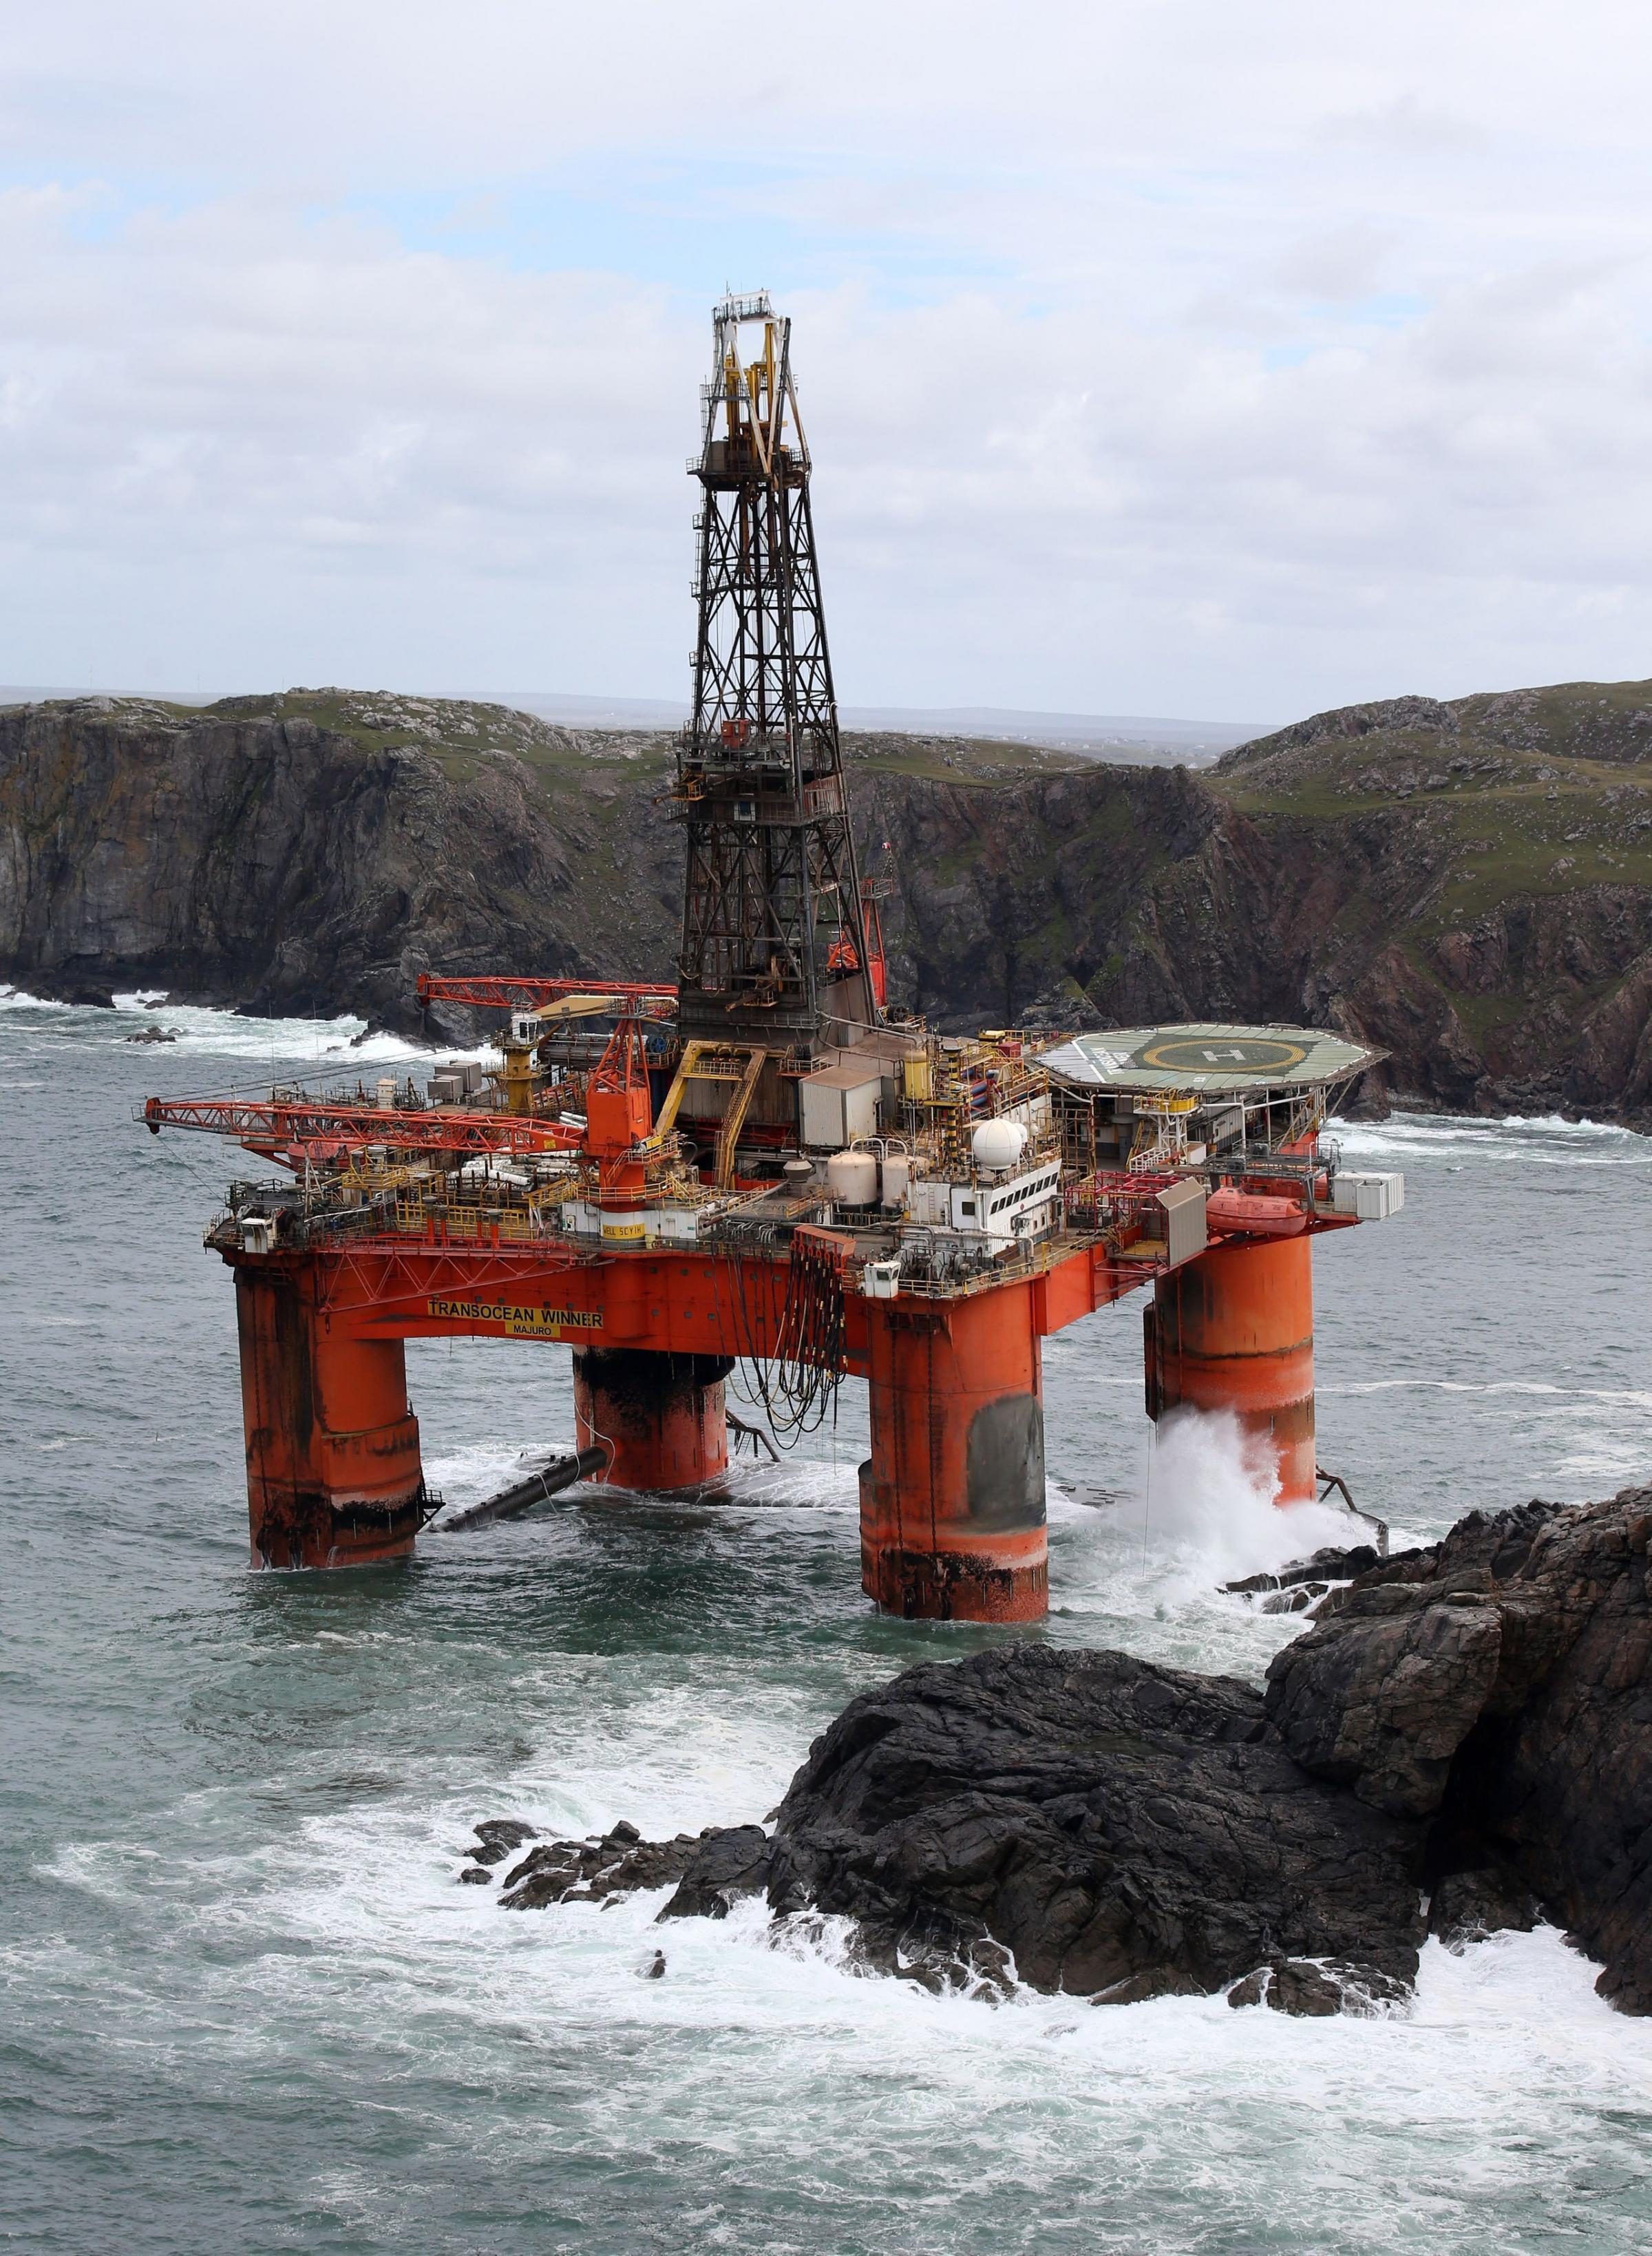 Local fishermen hit by rig grounding